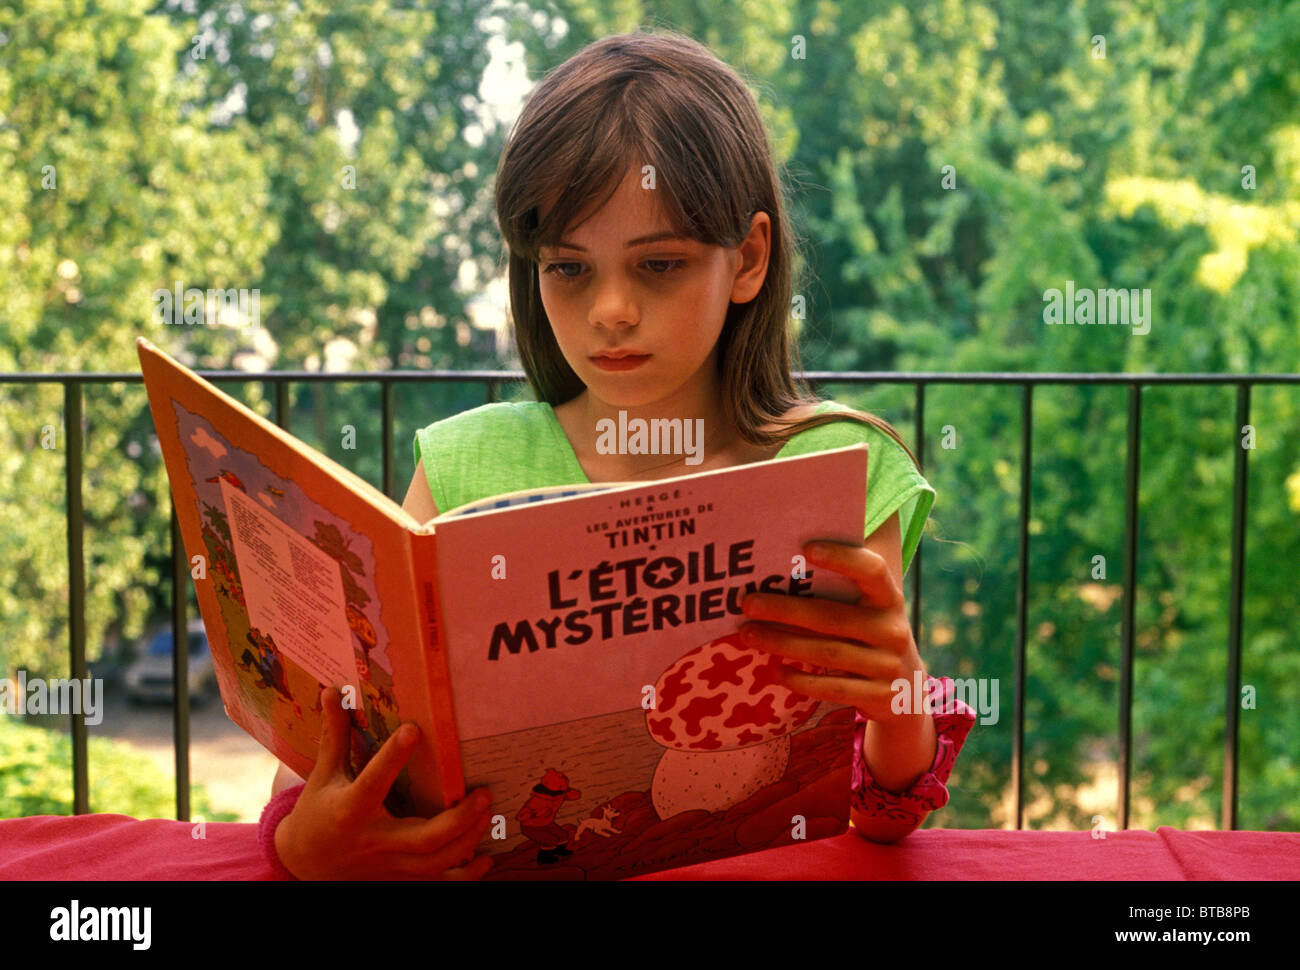 French girl, reading book, Tintin, L'Etoile Mysterieue, Herge, Verneuil-sur-Seine, Ile-de-France, France, Europe - Stock Image